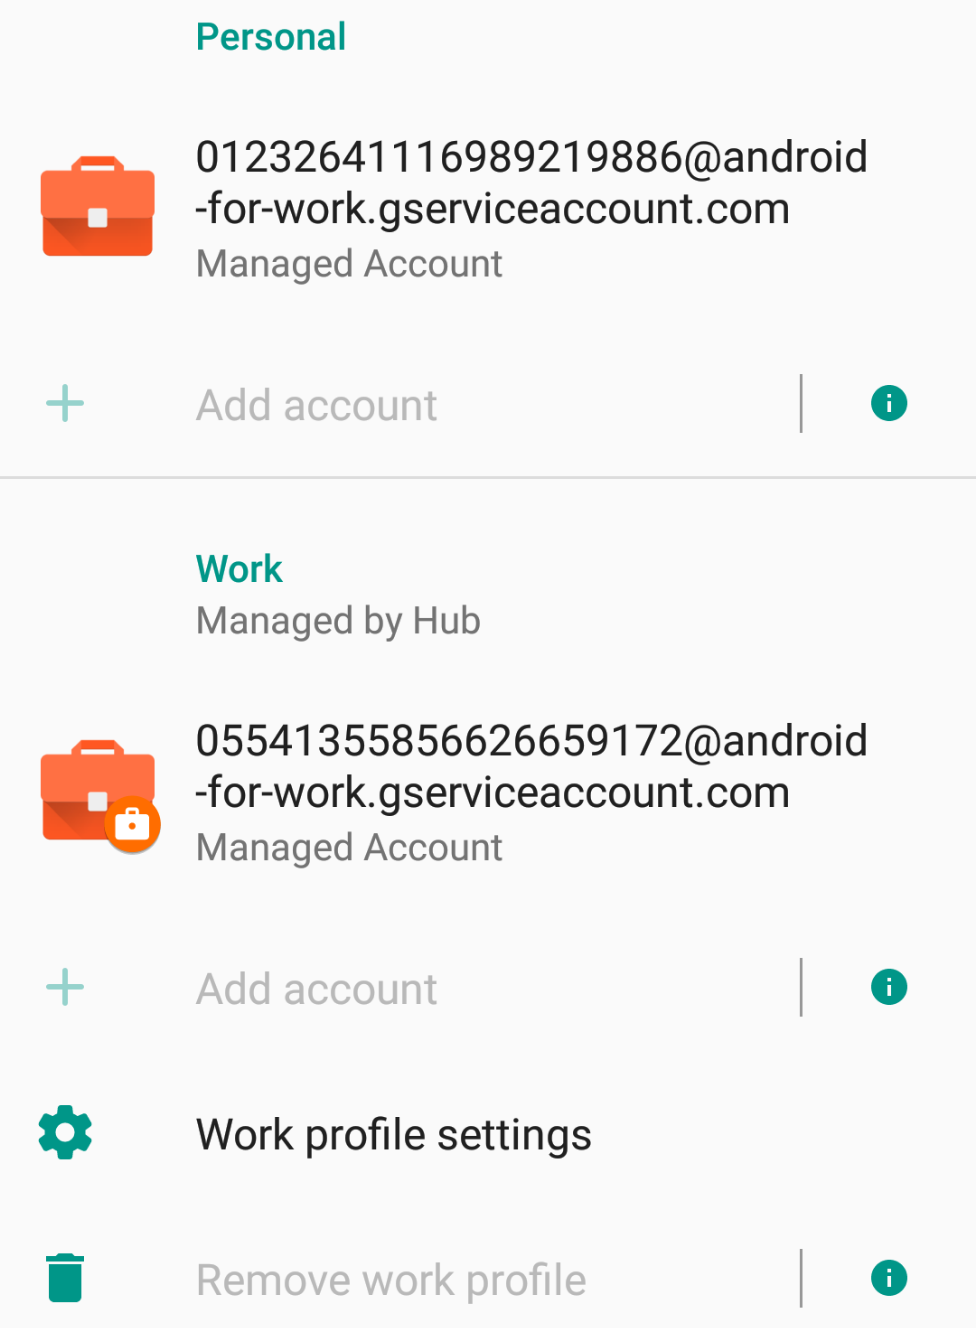 Workspace ONE UEM 1810 introduces support for Android